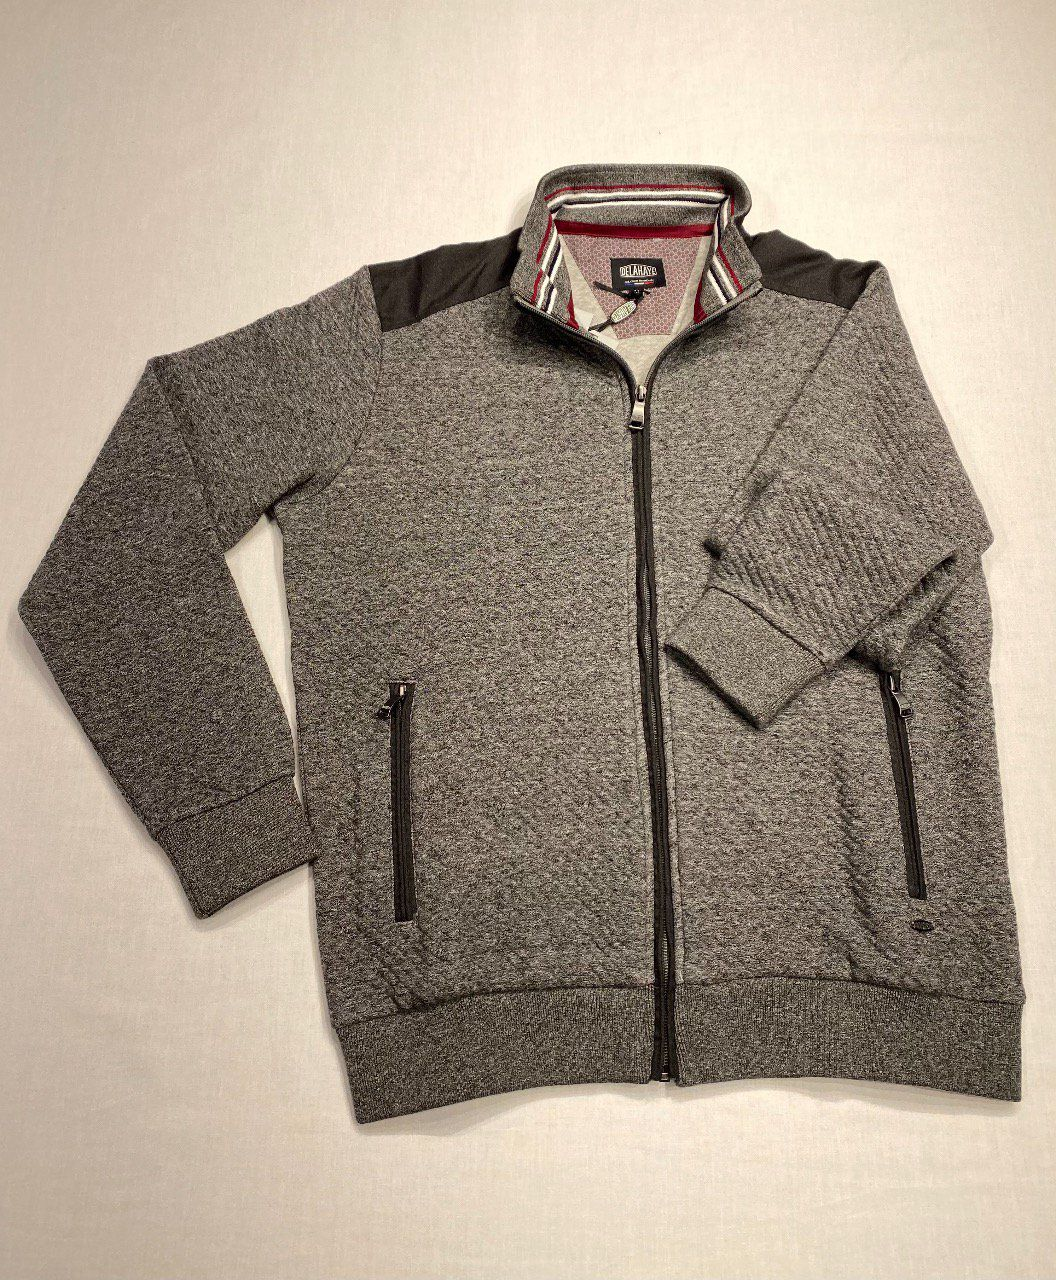 GILET  ZIPPE DELAHAYE  GRIS CHINE POCHES  ZIPPEES